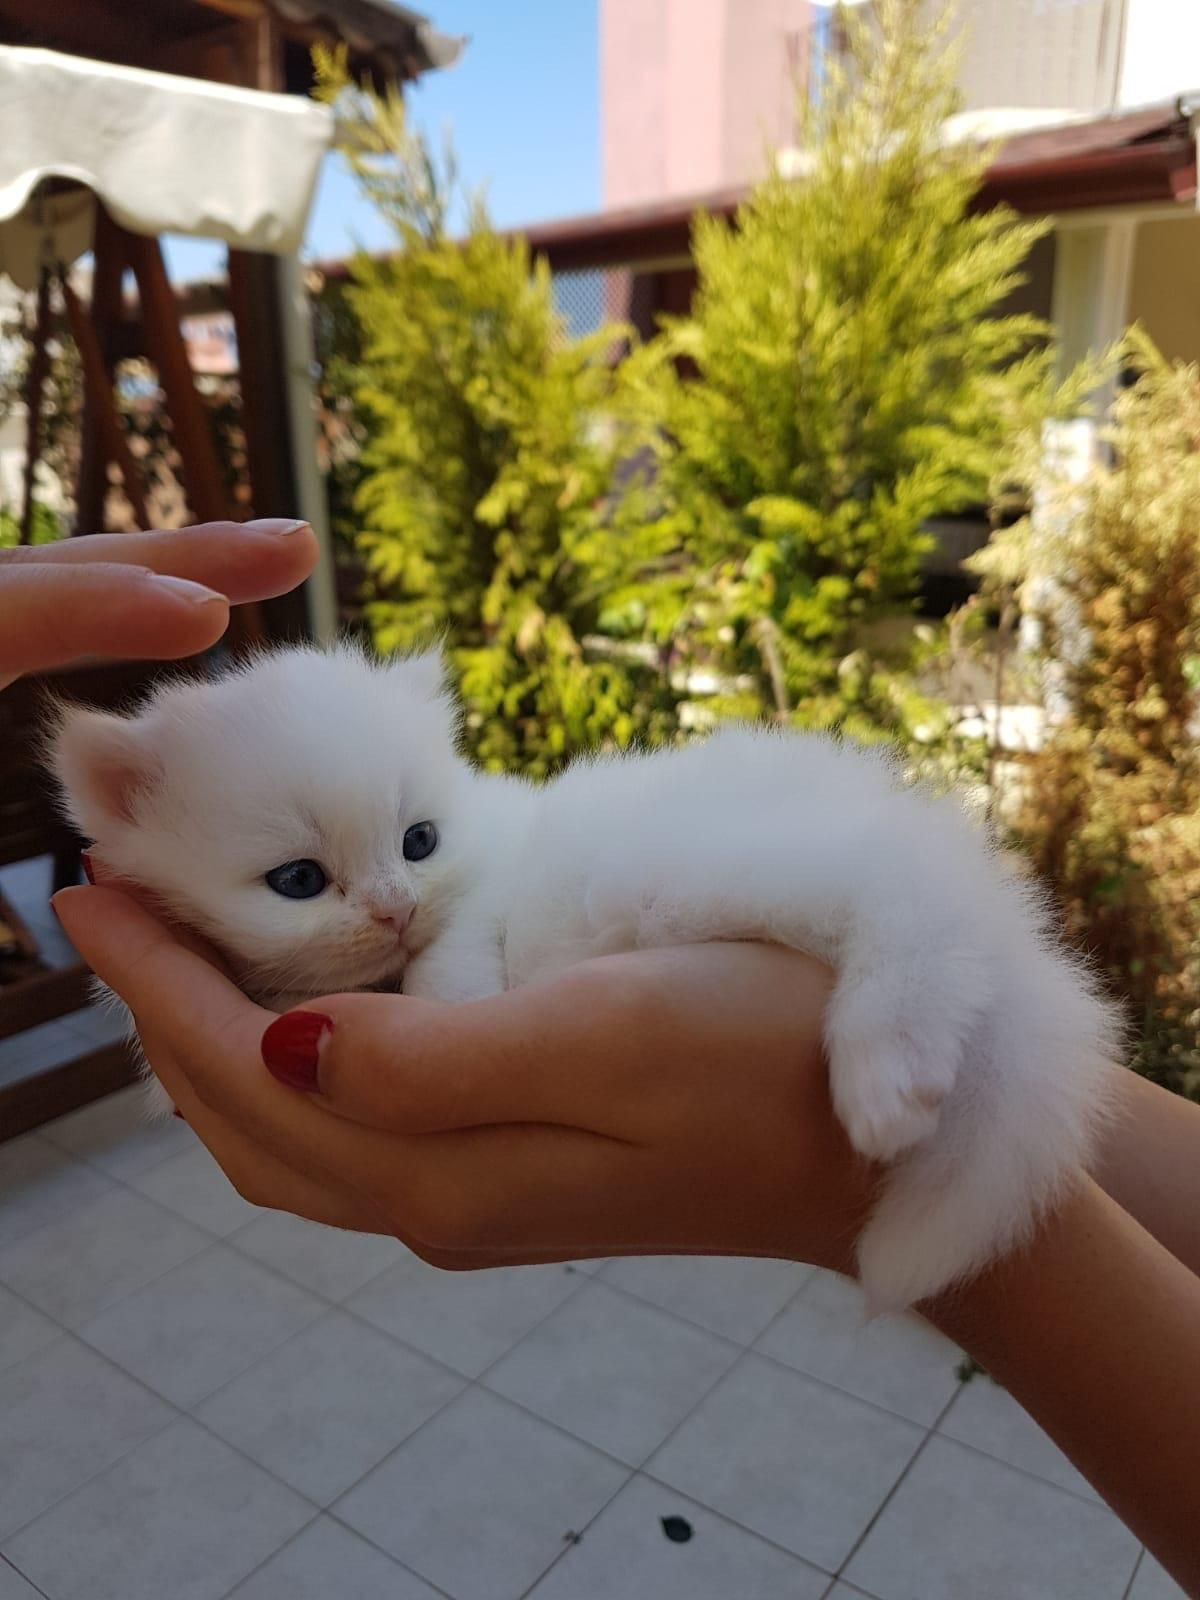 My Neighbors Cat Gave Birth To 2 Kittens A Couple Weeks Ago This Little Princess Knows She S Cute Cutehuggablepic Cute Animals Cute Cats Cute Baby Cats